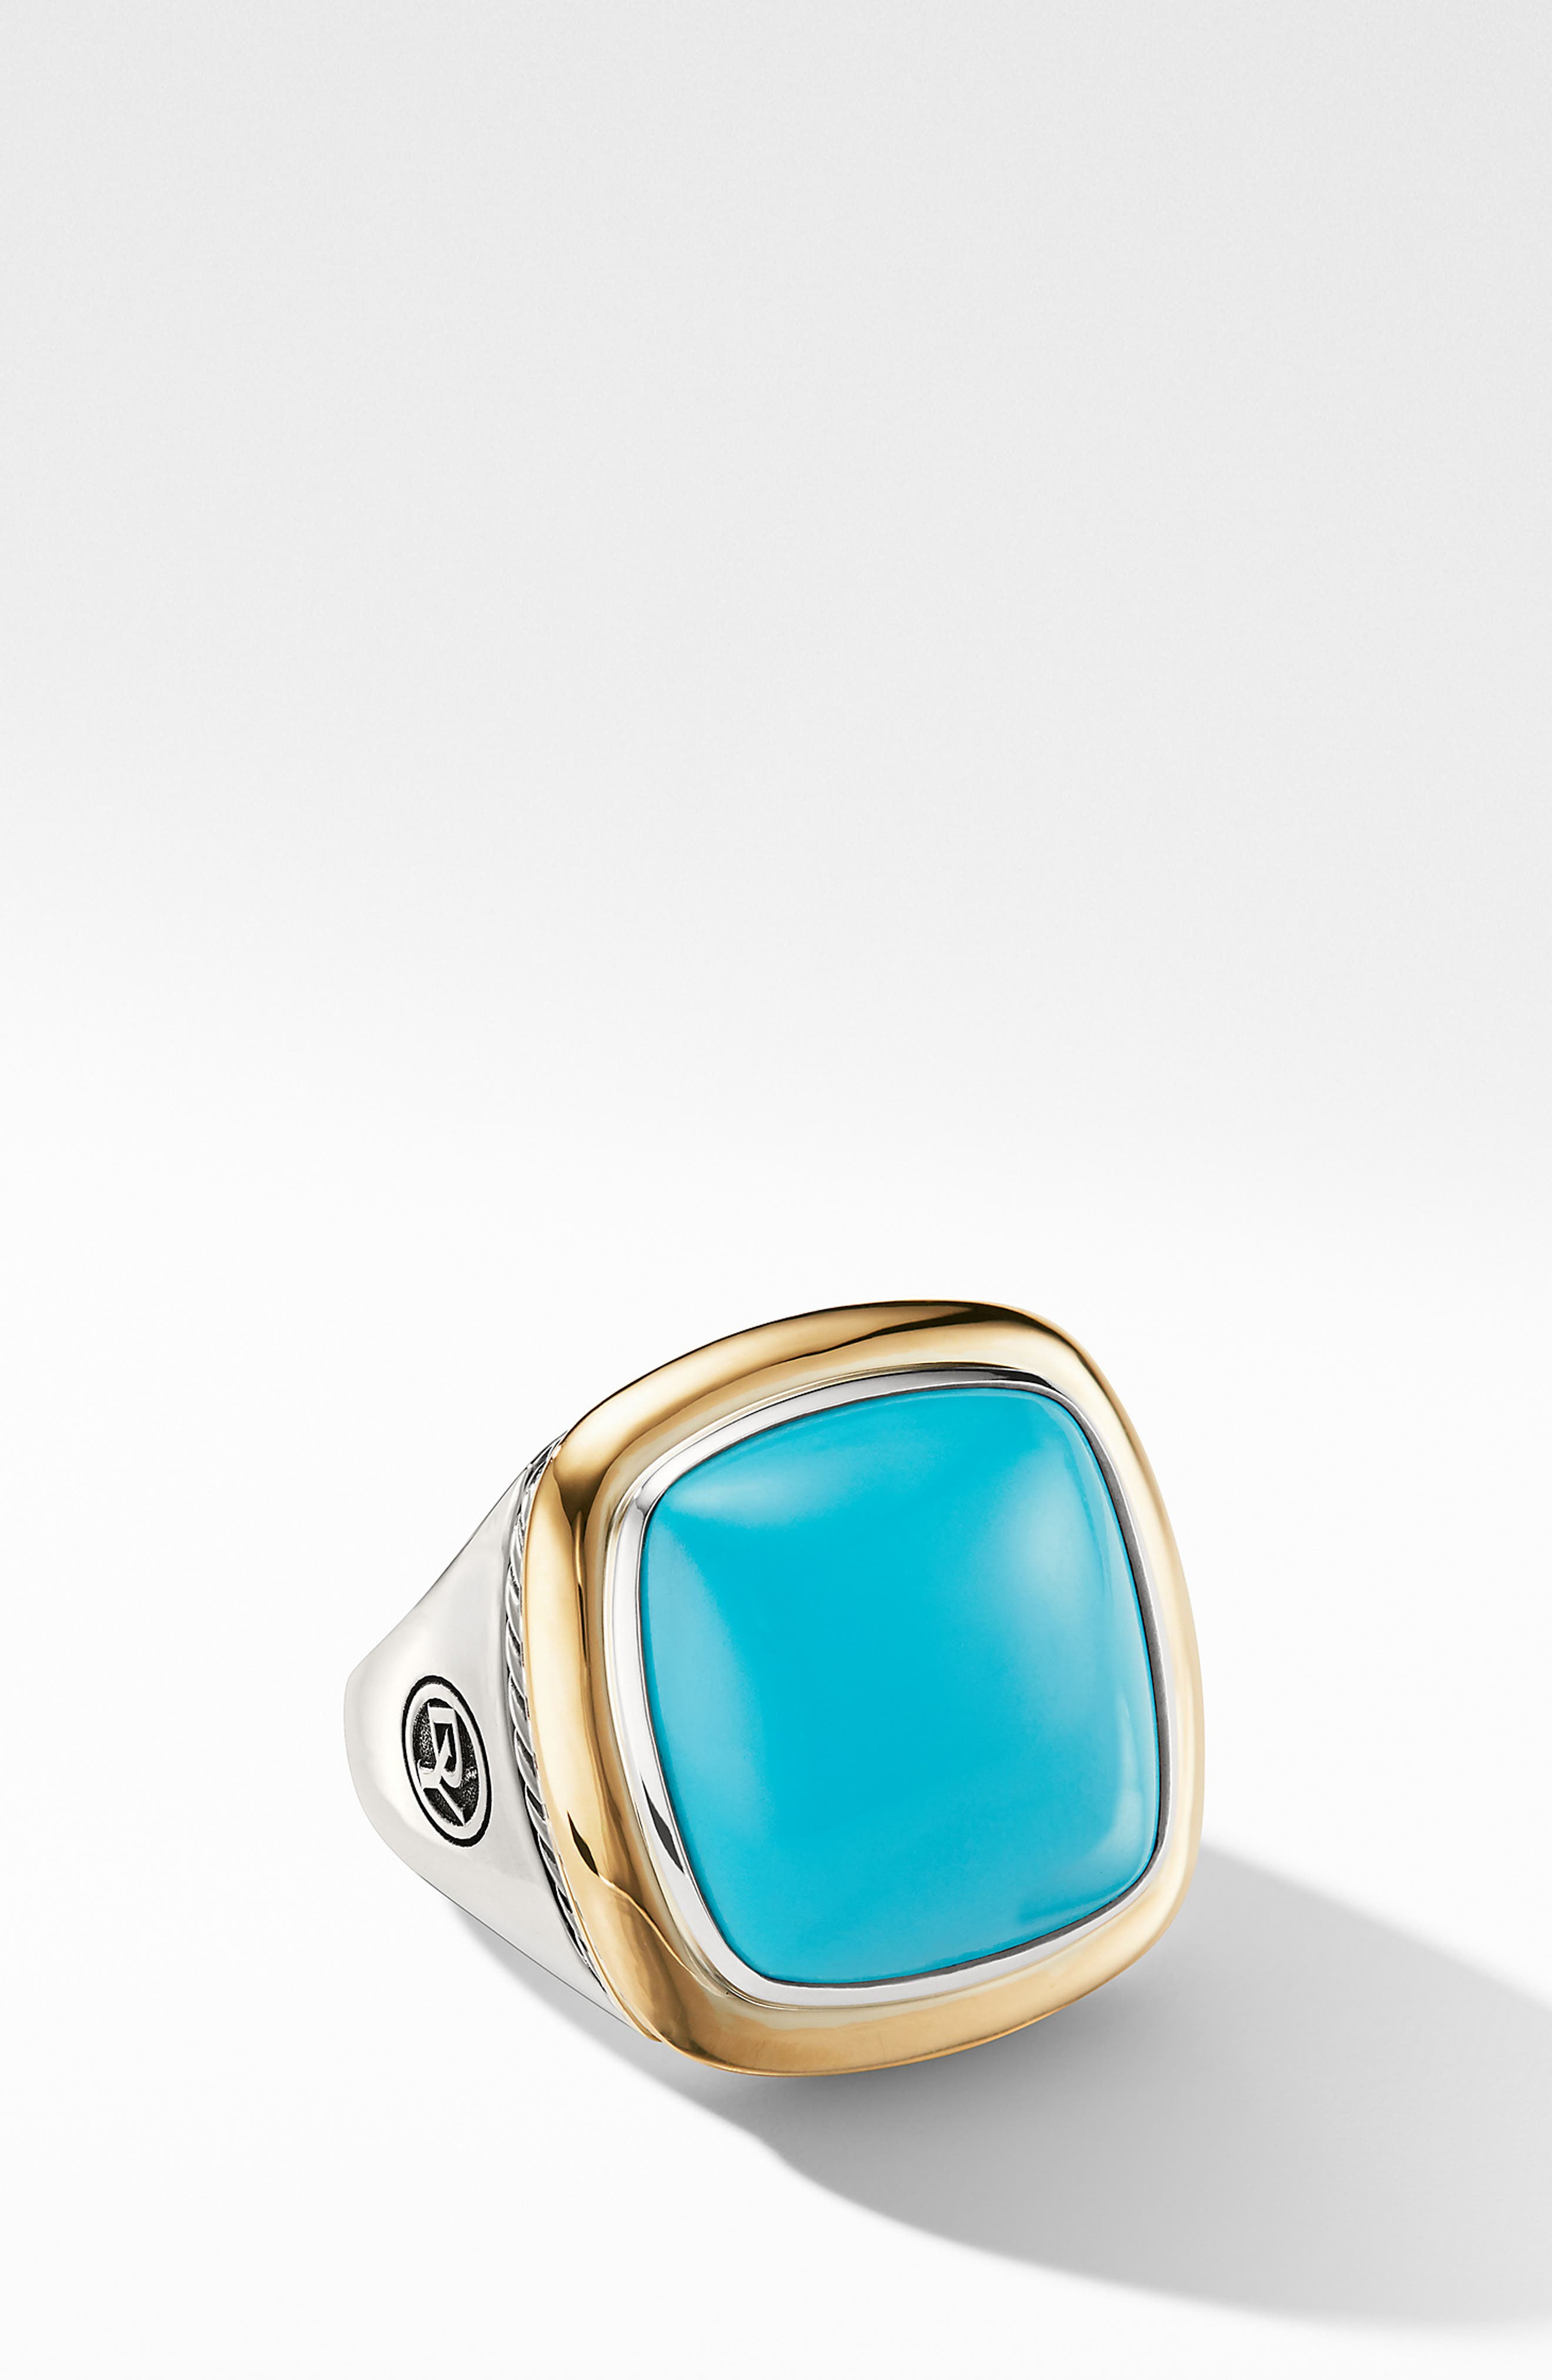 Albion<sup>®</sup> Statement Ring with 18K Gold and Champagne Citrine or Reconstituted Turquoise,                         Main,                         color, RECONSTITUTED TURQUOISE